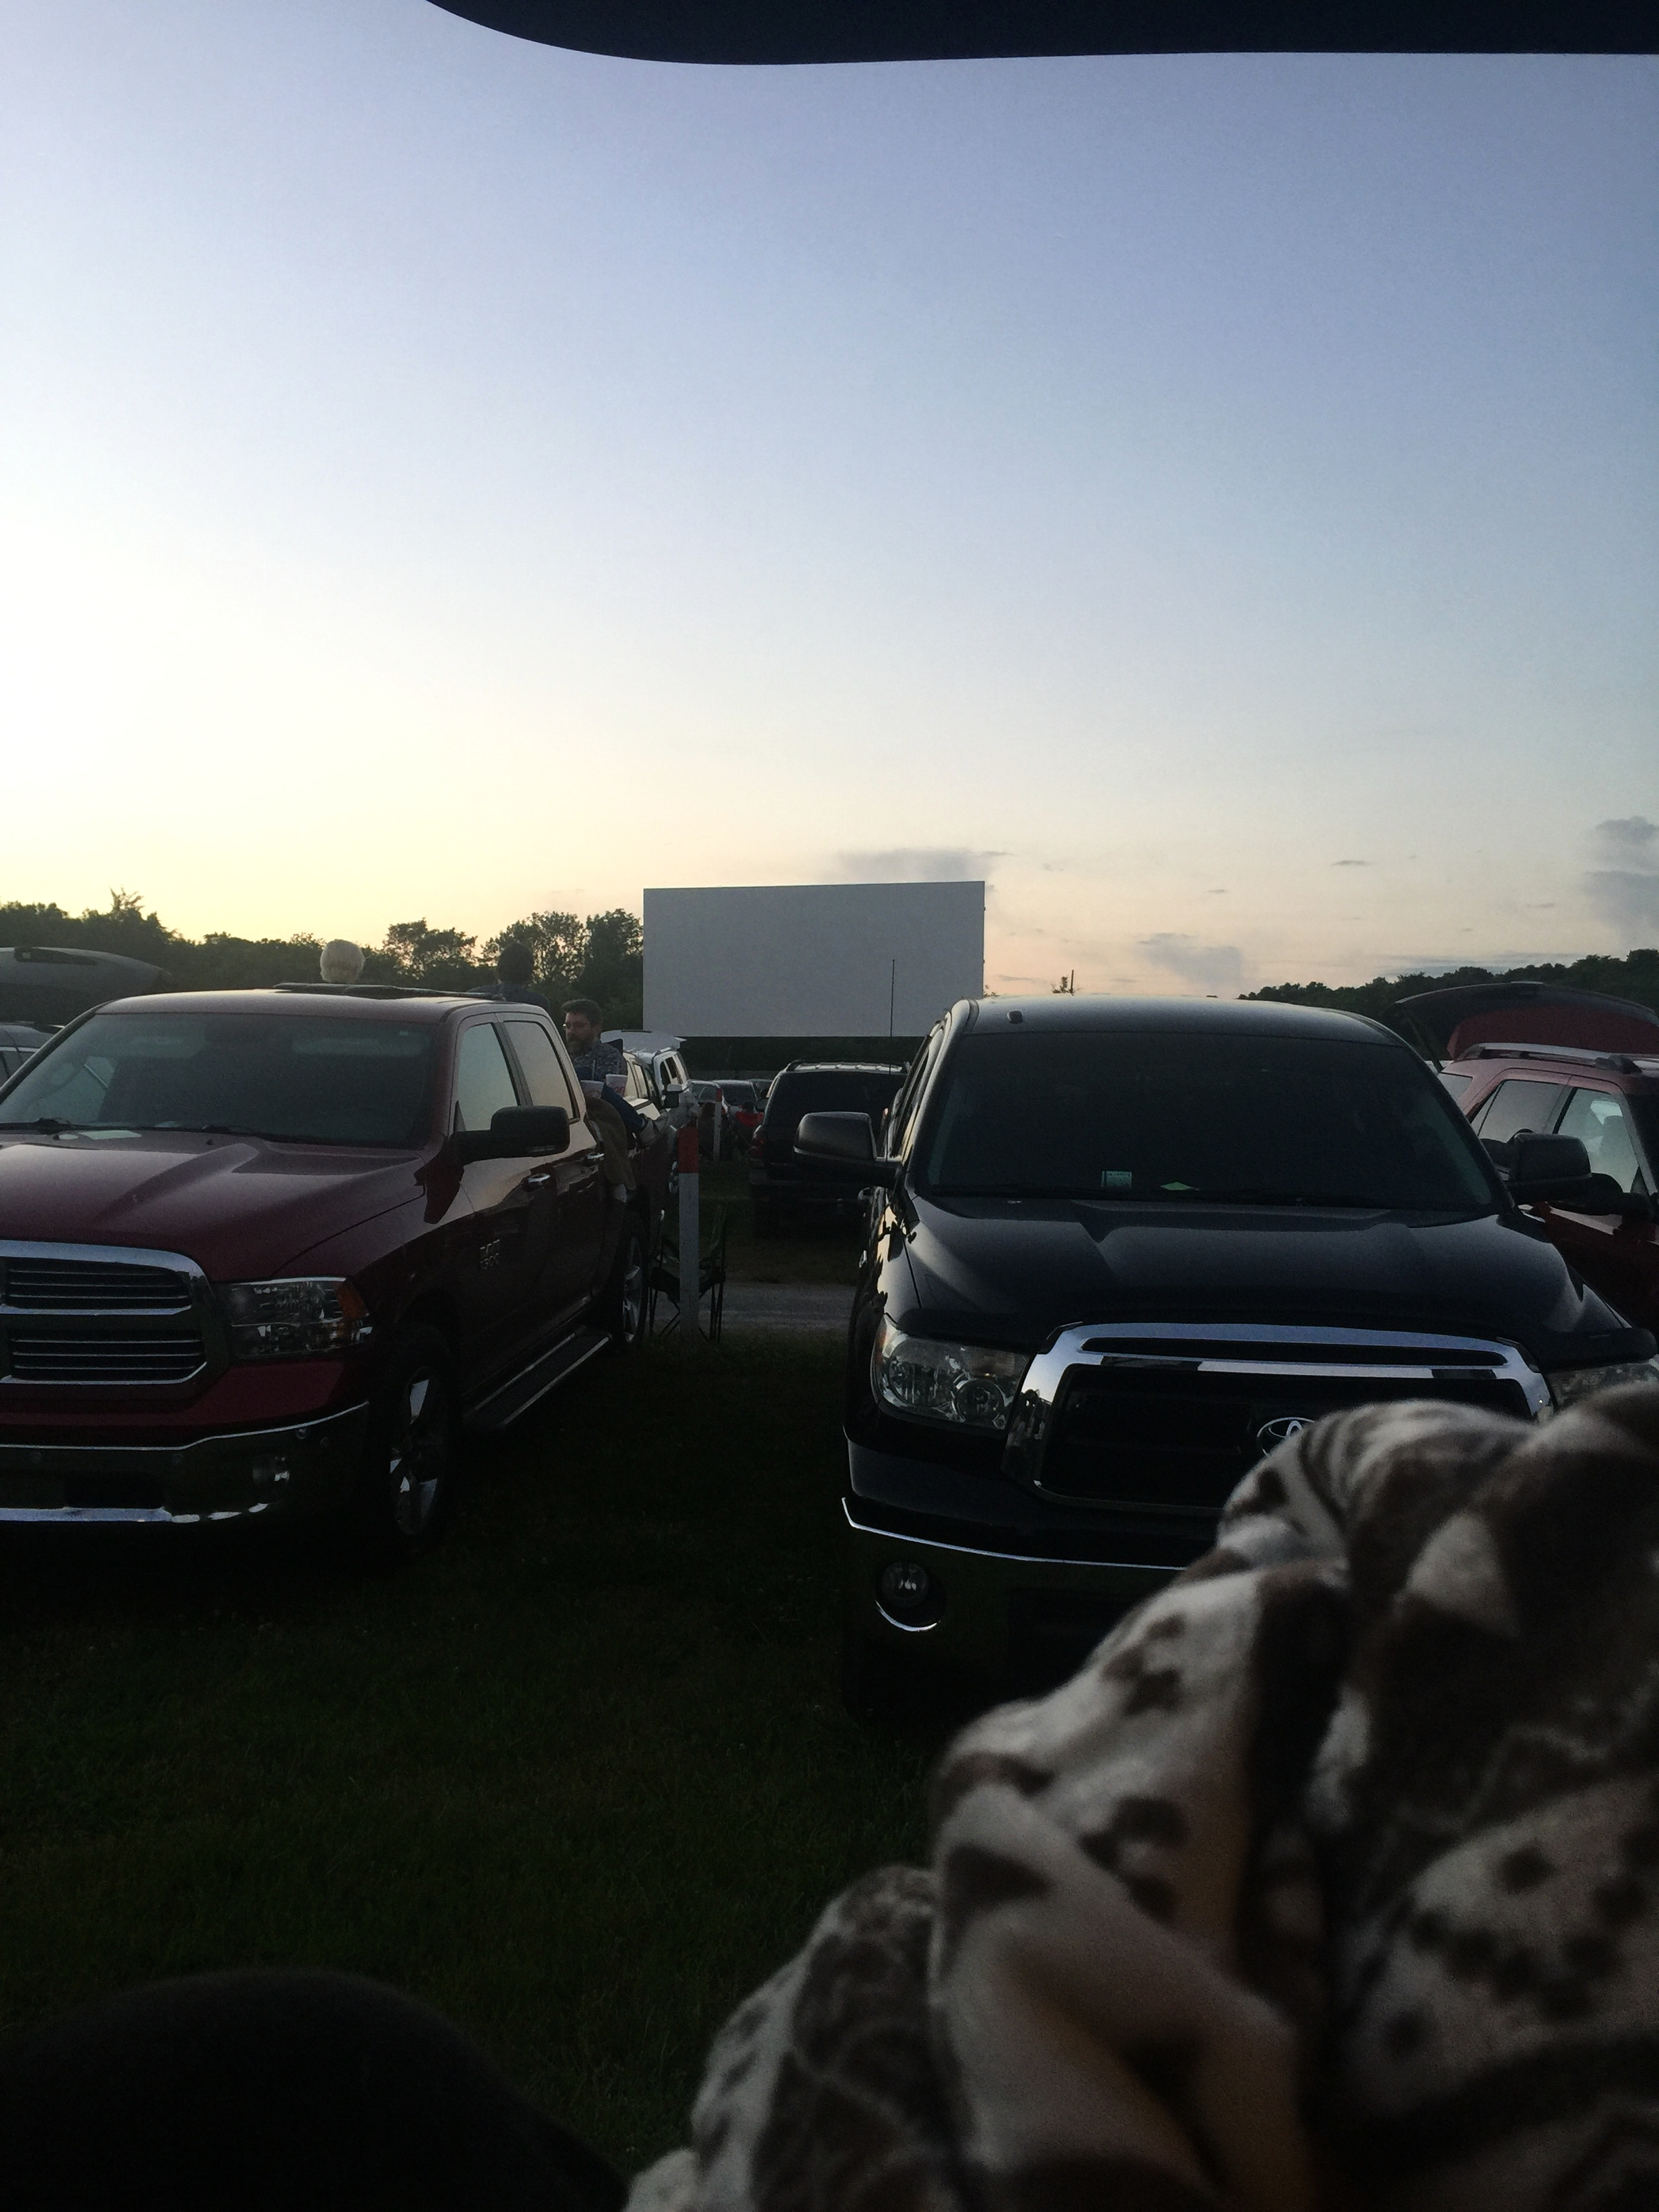 & went to a drive-in movie!